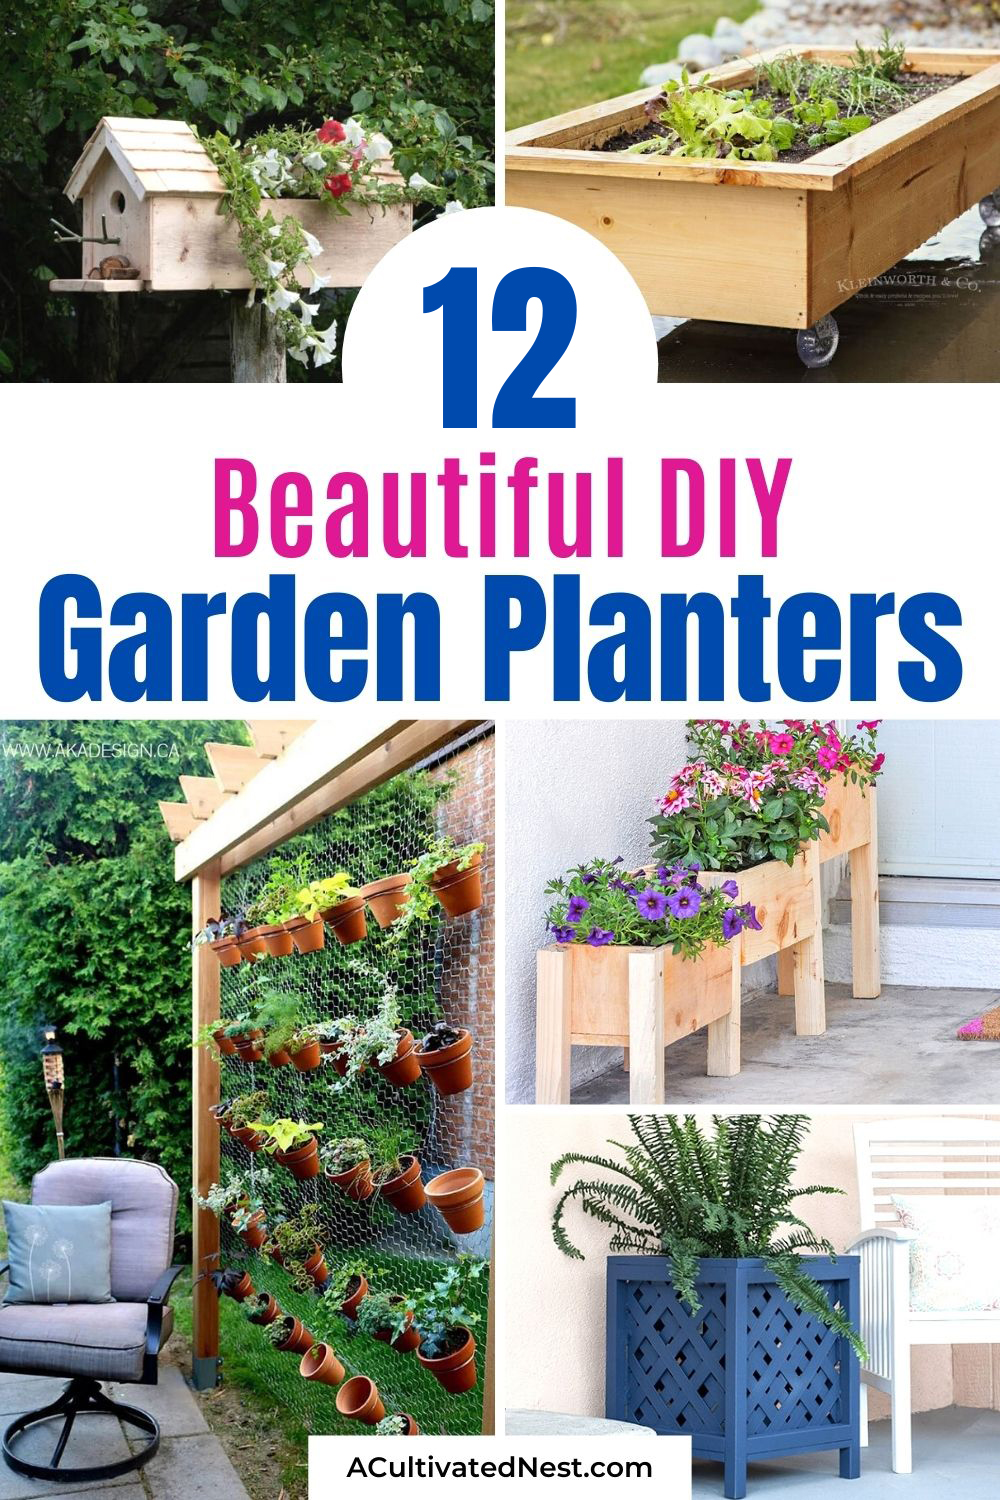 12 Easy DIY Garden Planters- If you want to make your outdoor space more beautiful, then you need to take a look at these 12 easy DIY garden planters! They're perfect for flowers, herbs, or pretty much any plants! | #diyPlanters #diyProjects #gardeningTips #gardenDIY #ACultivatedNest